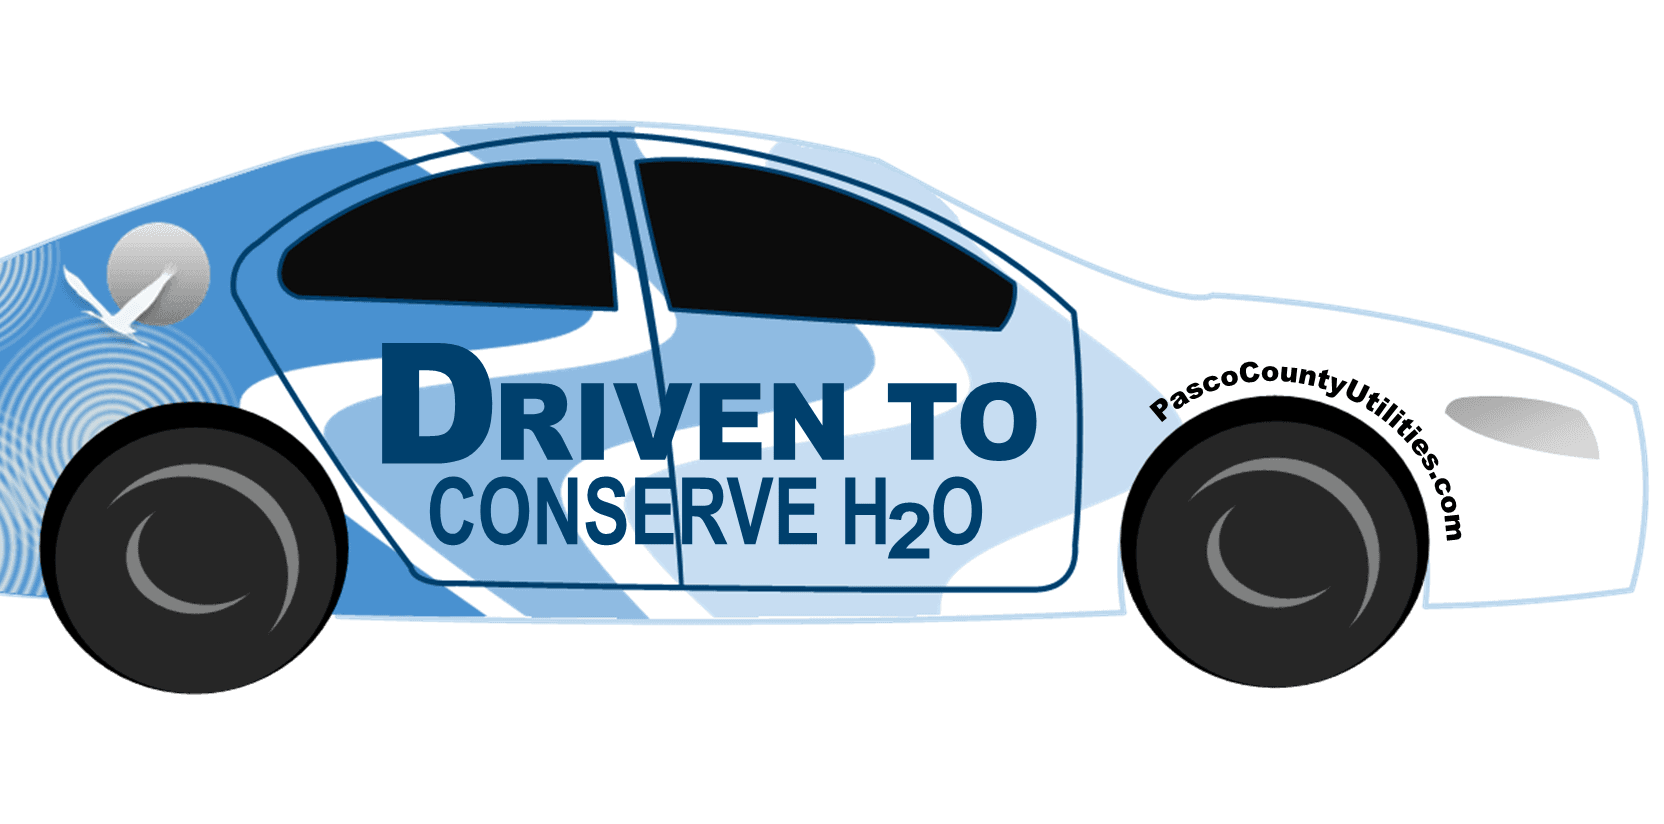 Driven To Conserve H2O Car with the website listed above the tire. Reading PascoCountyUtilities.com